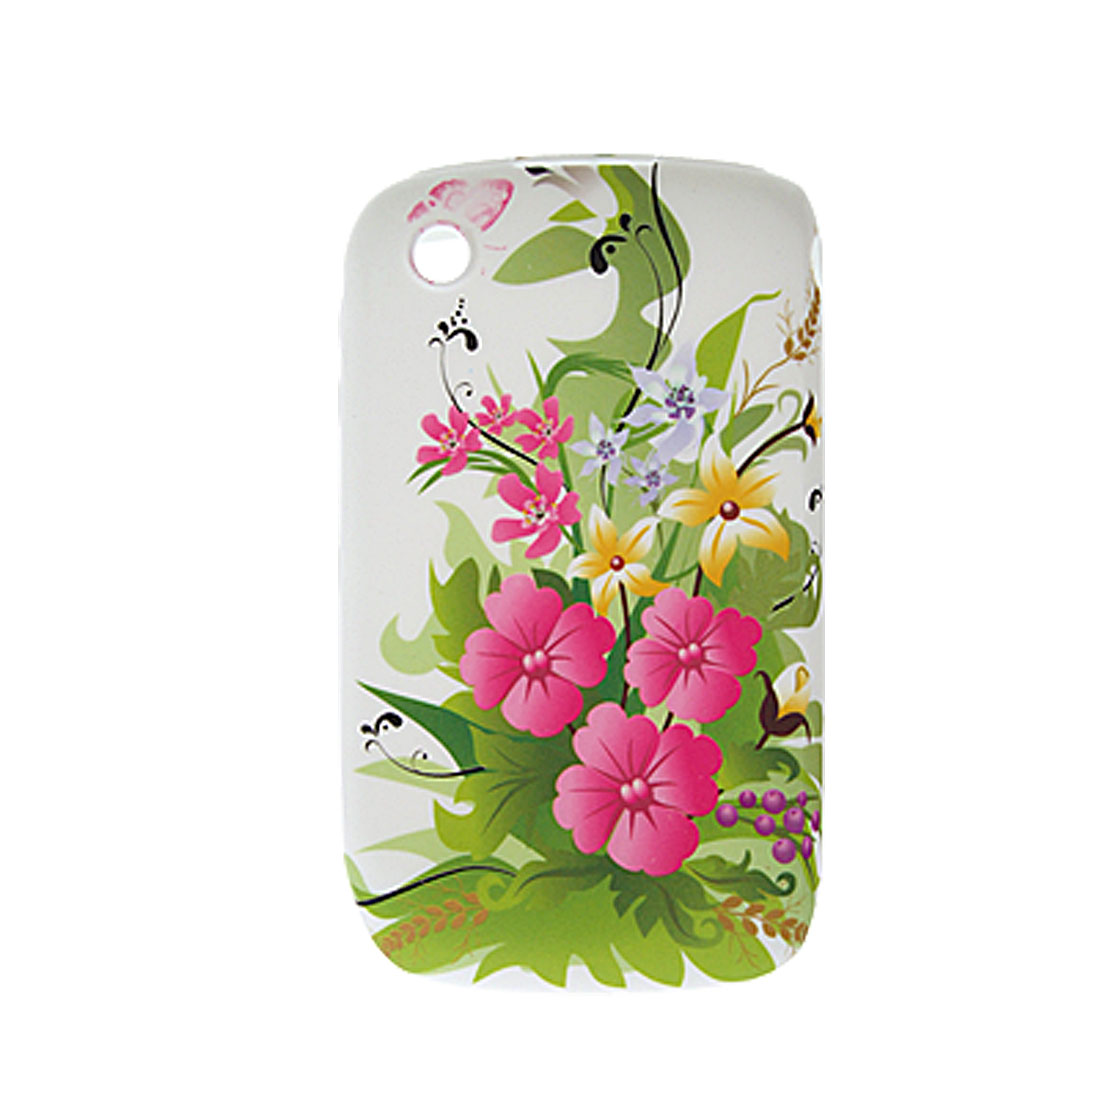 Floral Soft Plastic Cover + Screen Protector for Blackberry 8520